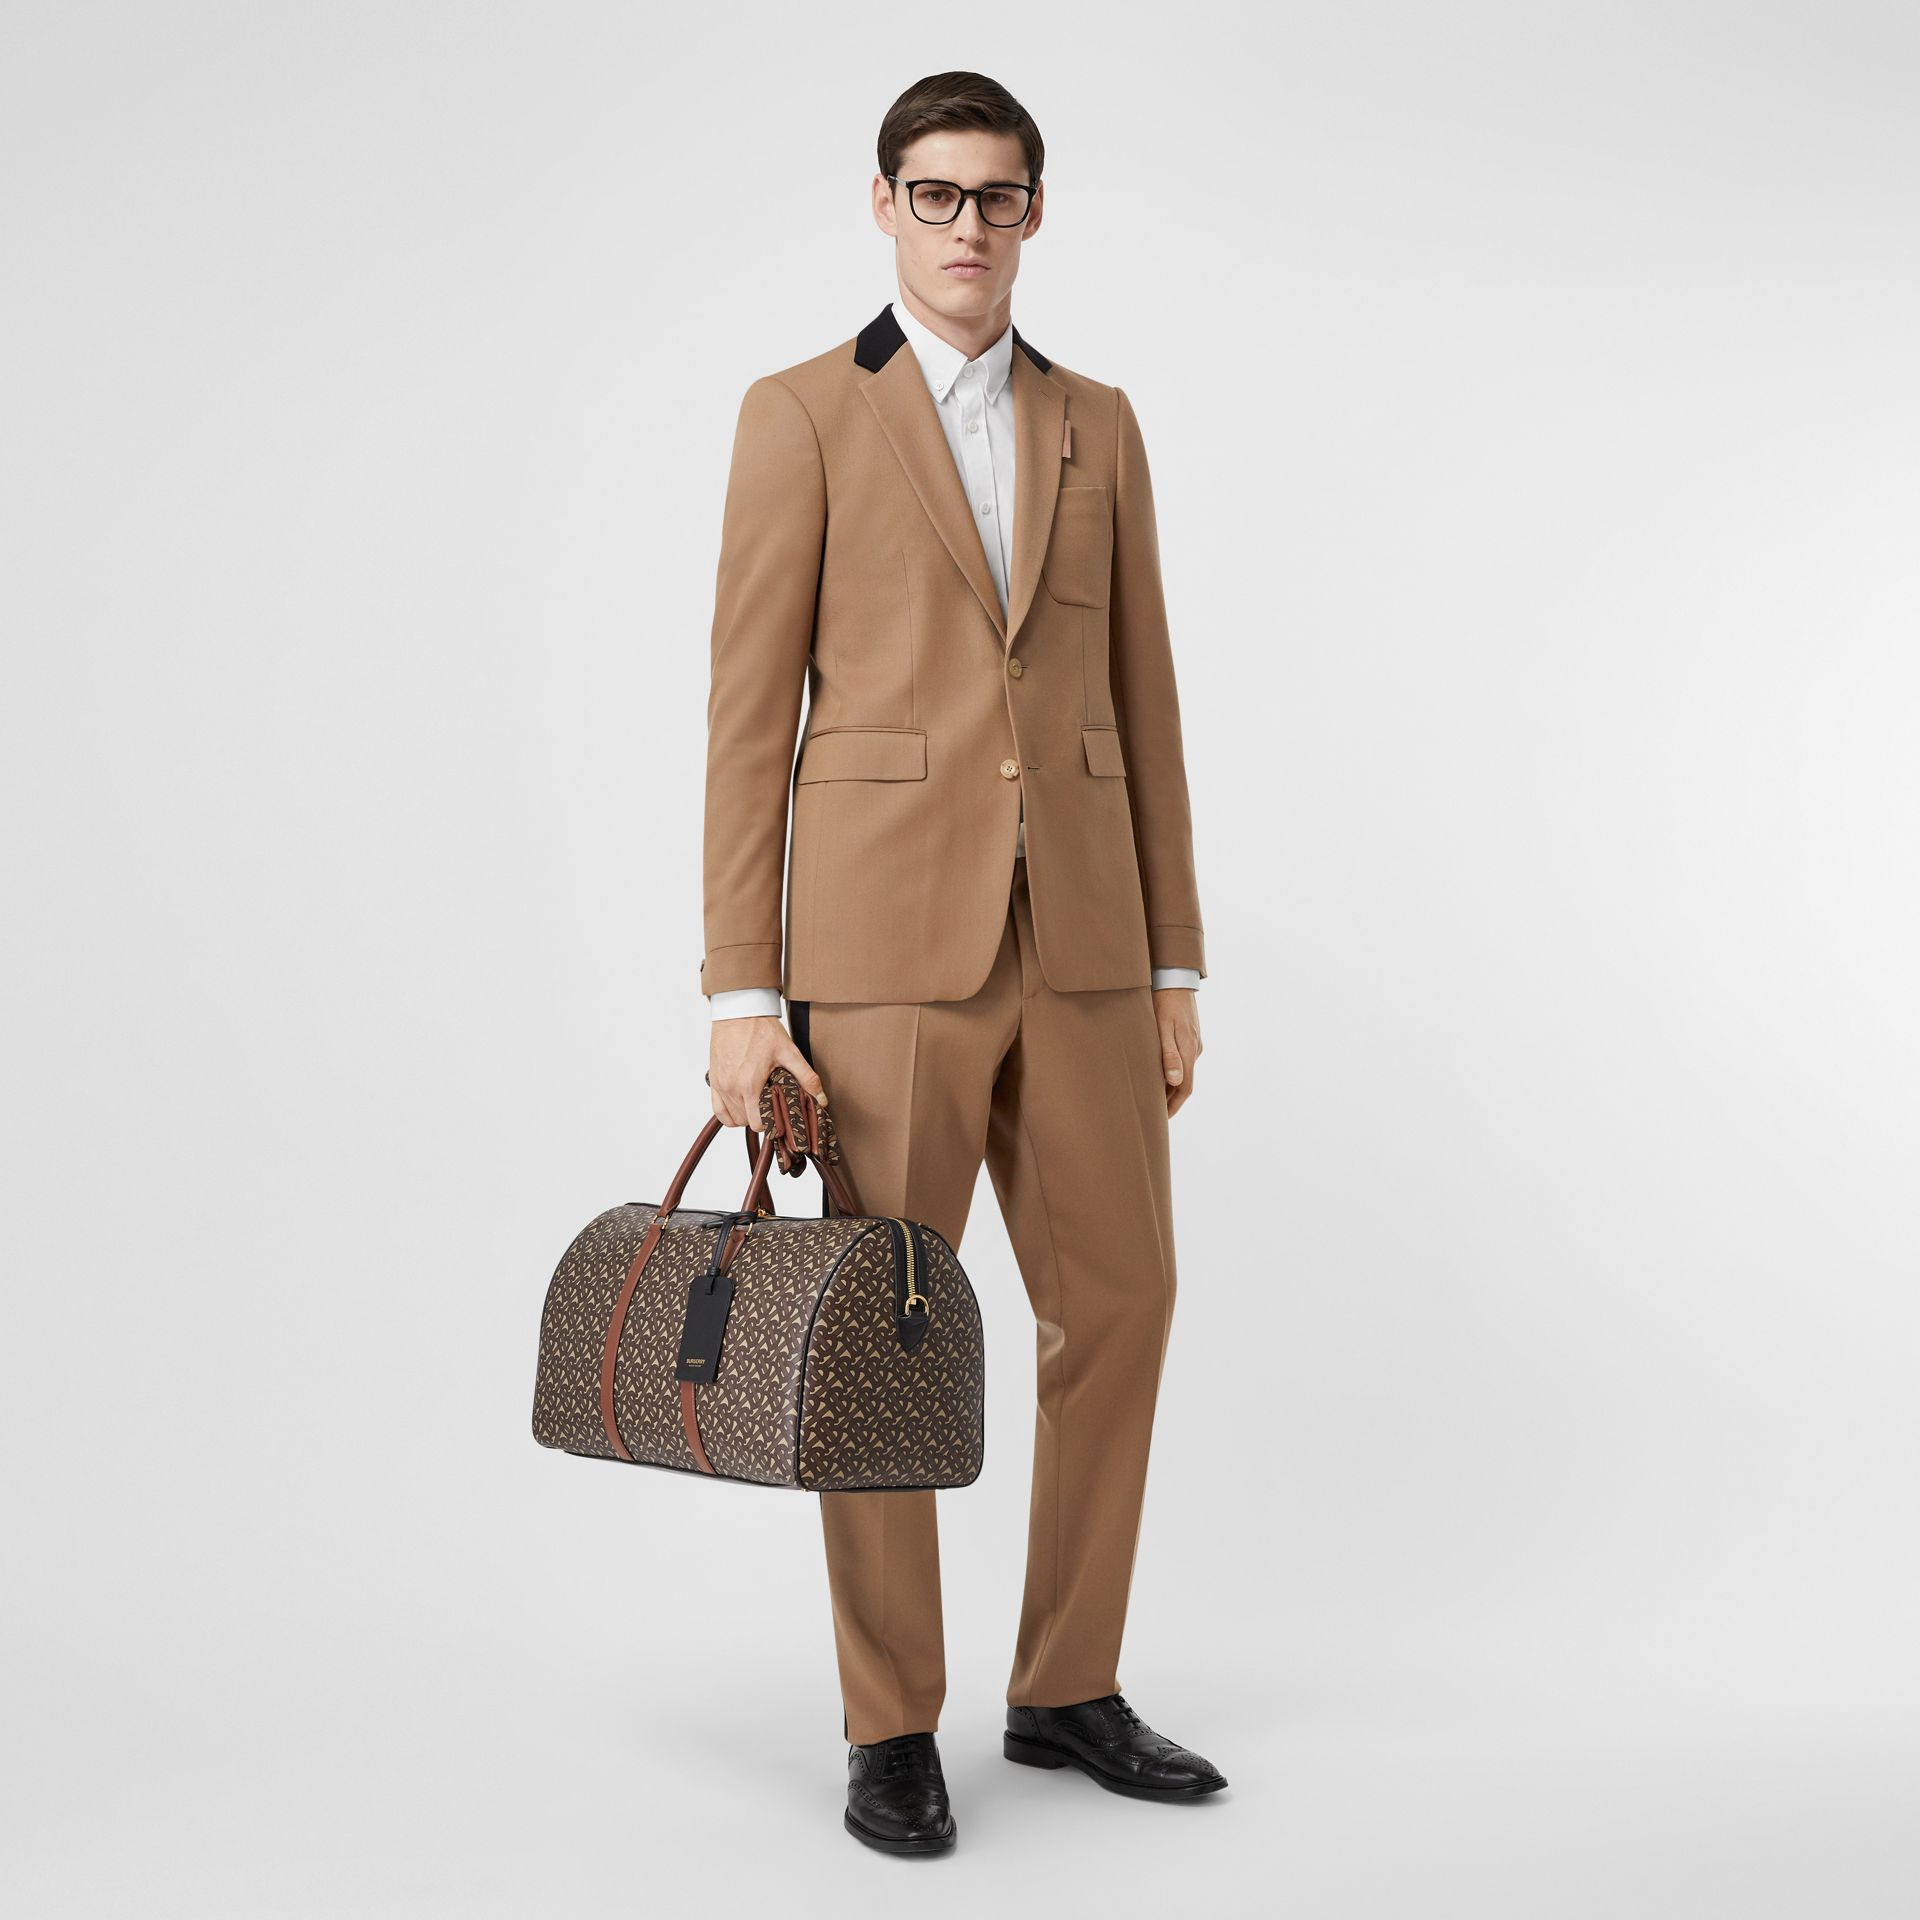 Classic Fit Two-tone Wool Tailored Jacket in Camel - Men | Burberry United Kingdom - gallery image 6